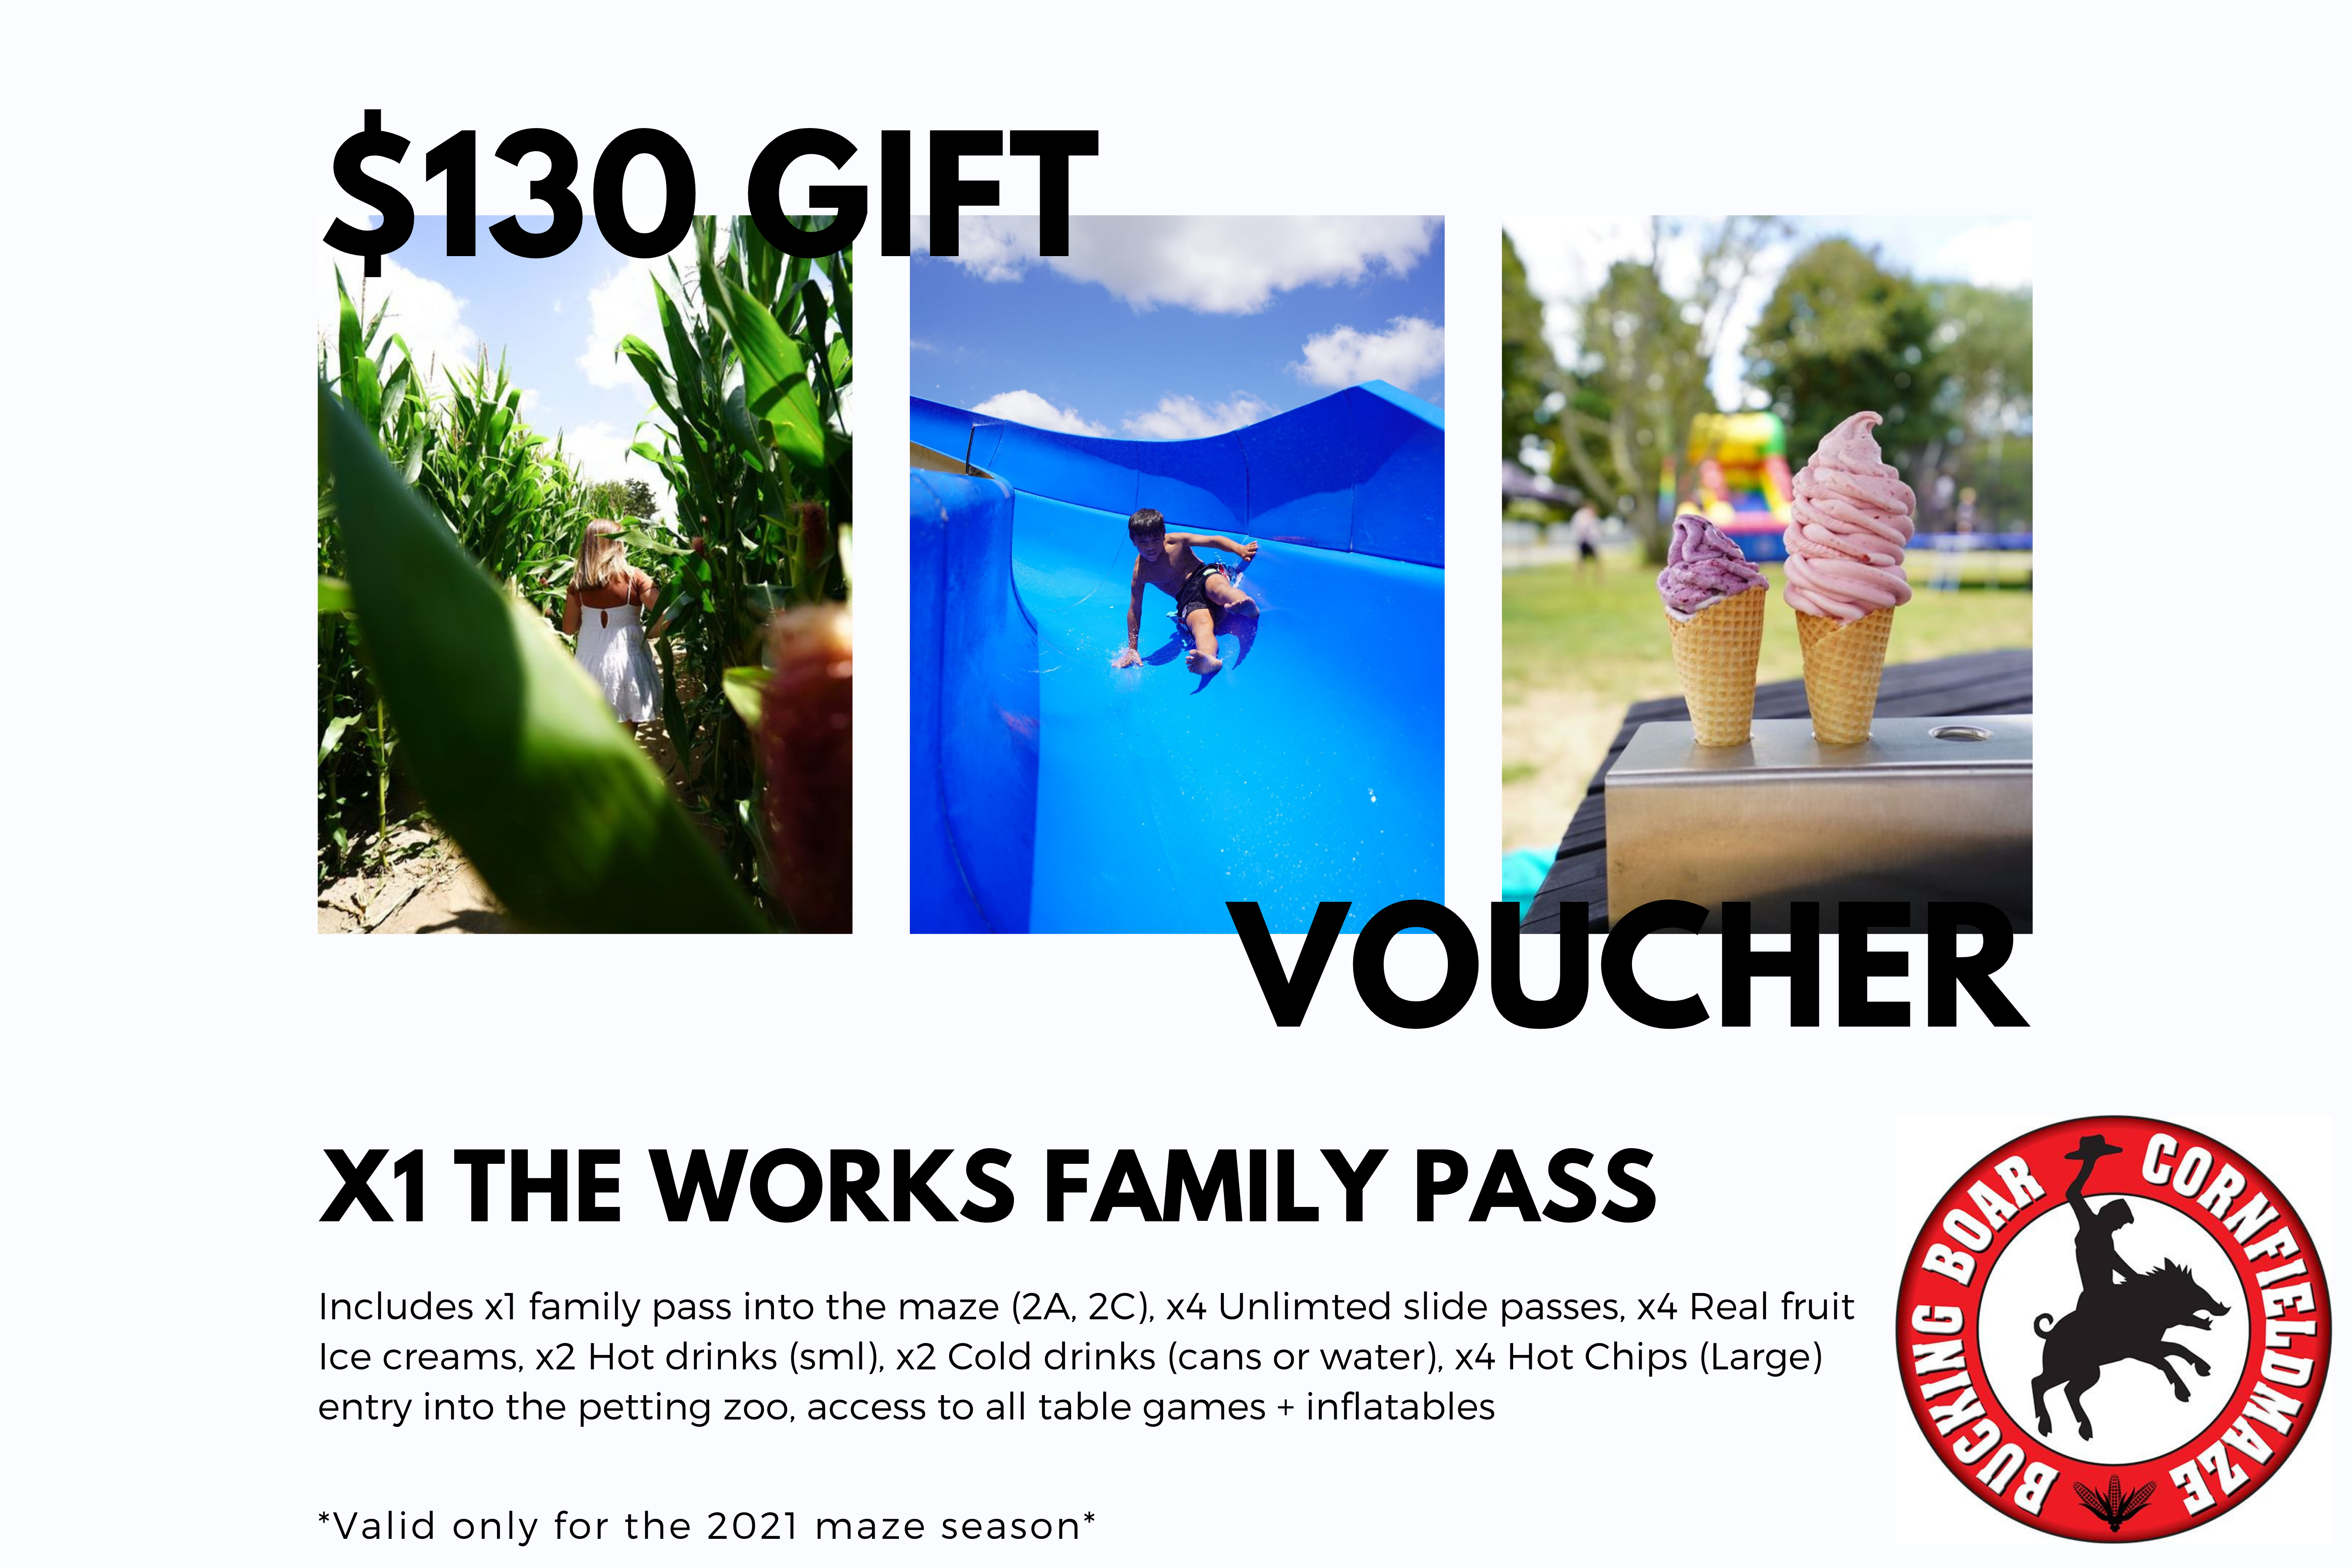 Gift Voucher - The Works Family Pass